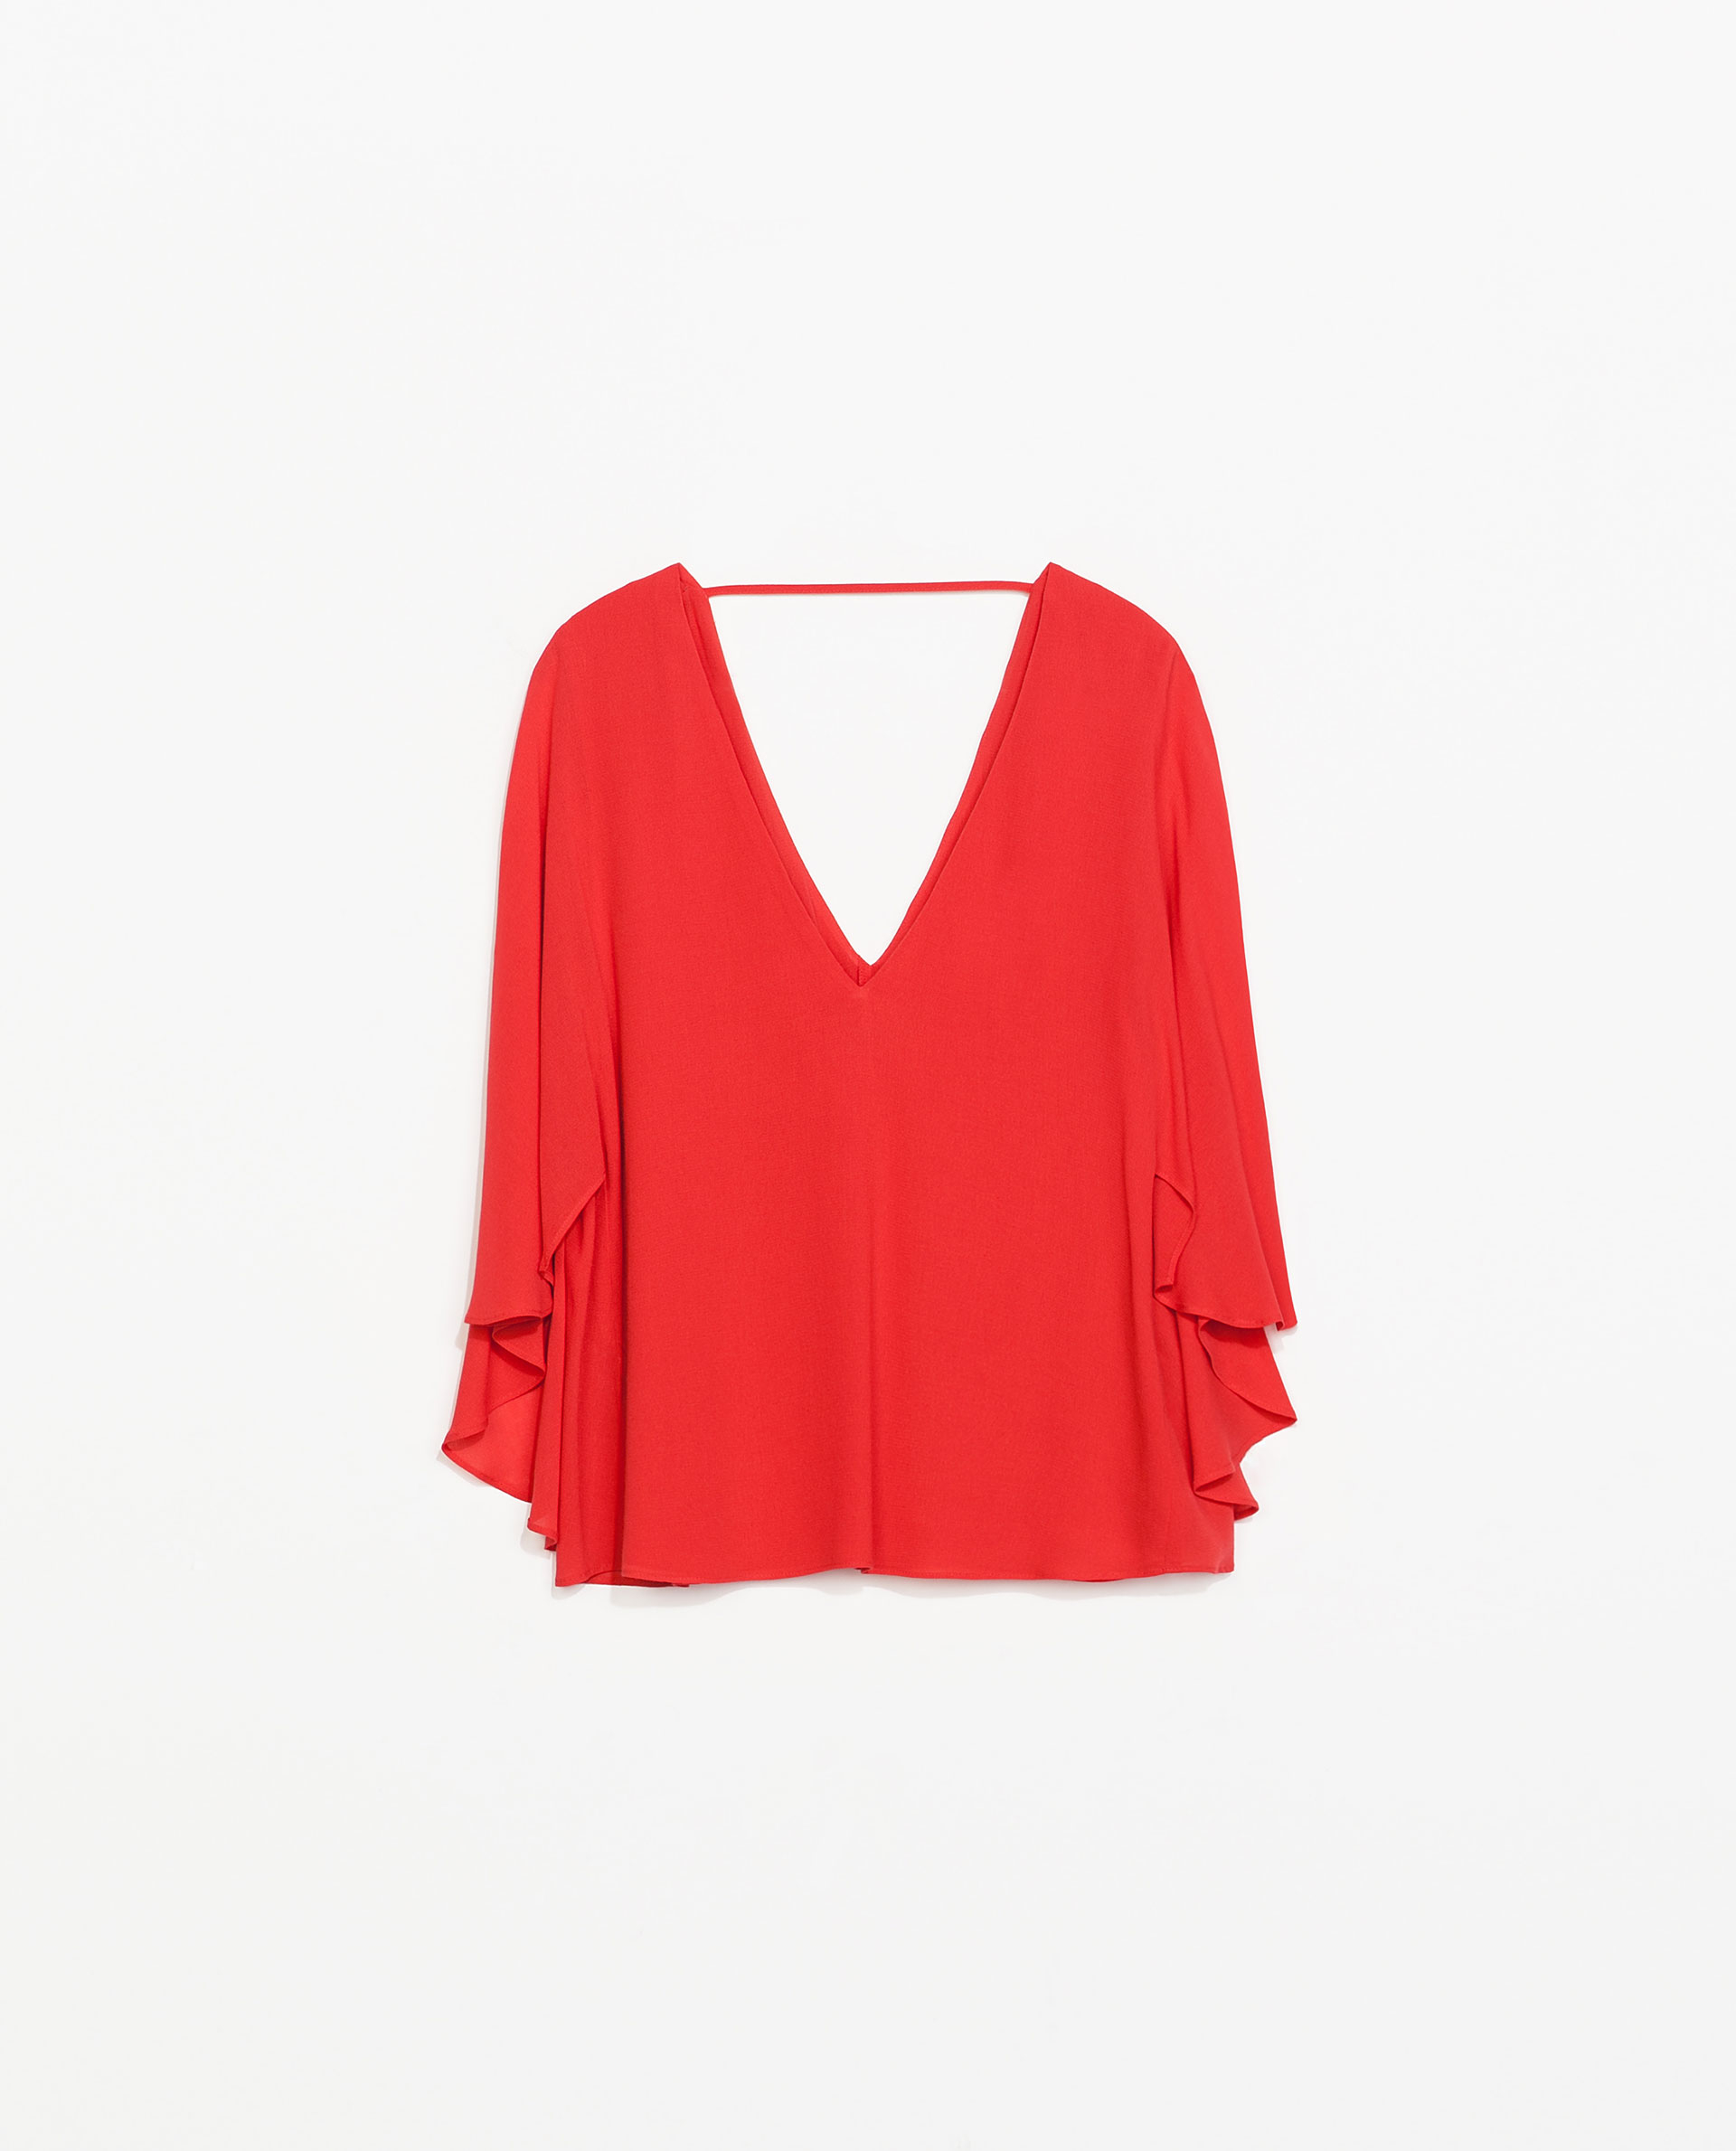 Zara Red Blouse 92